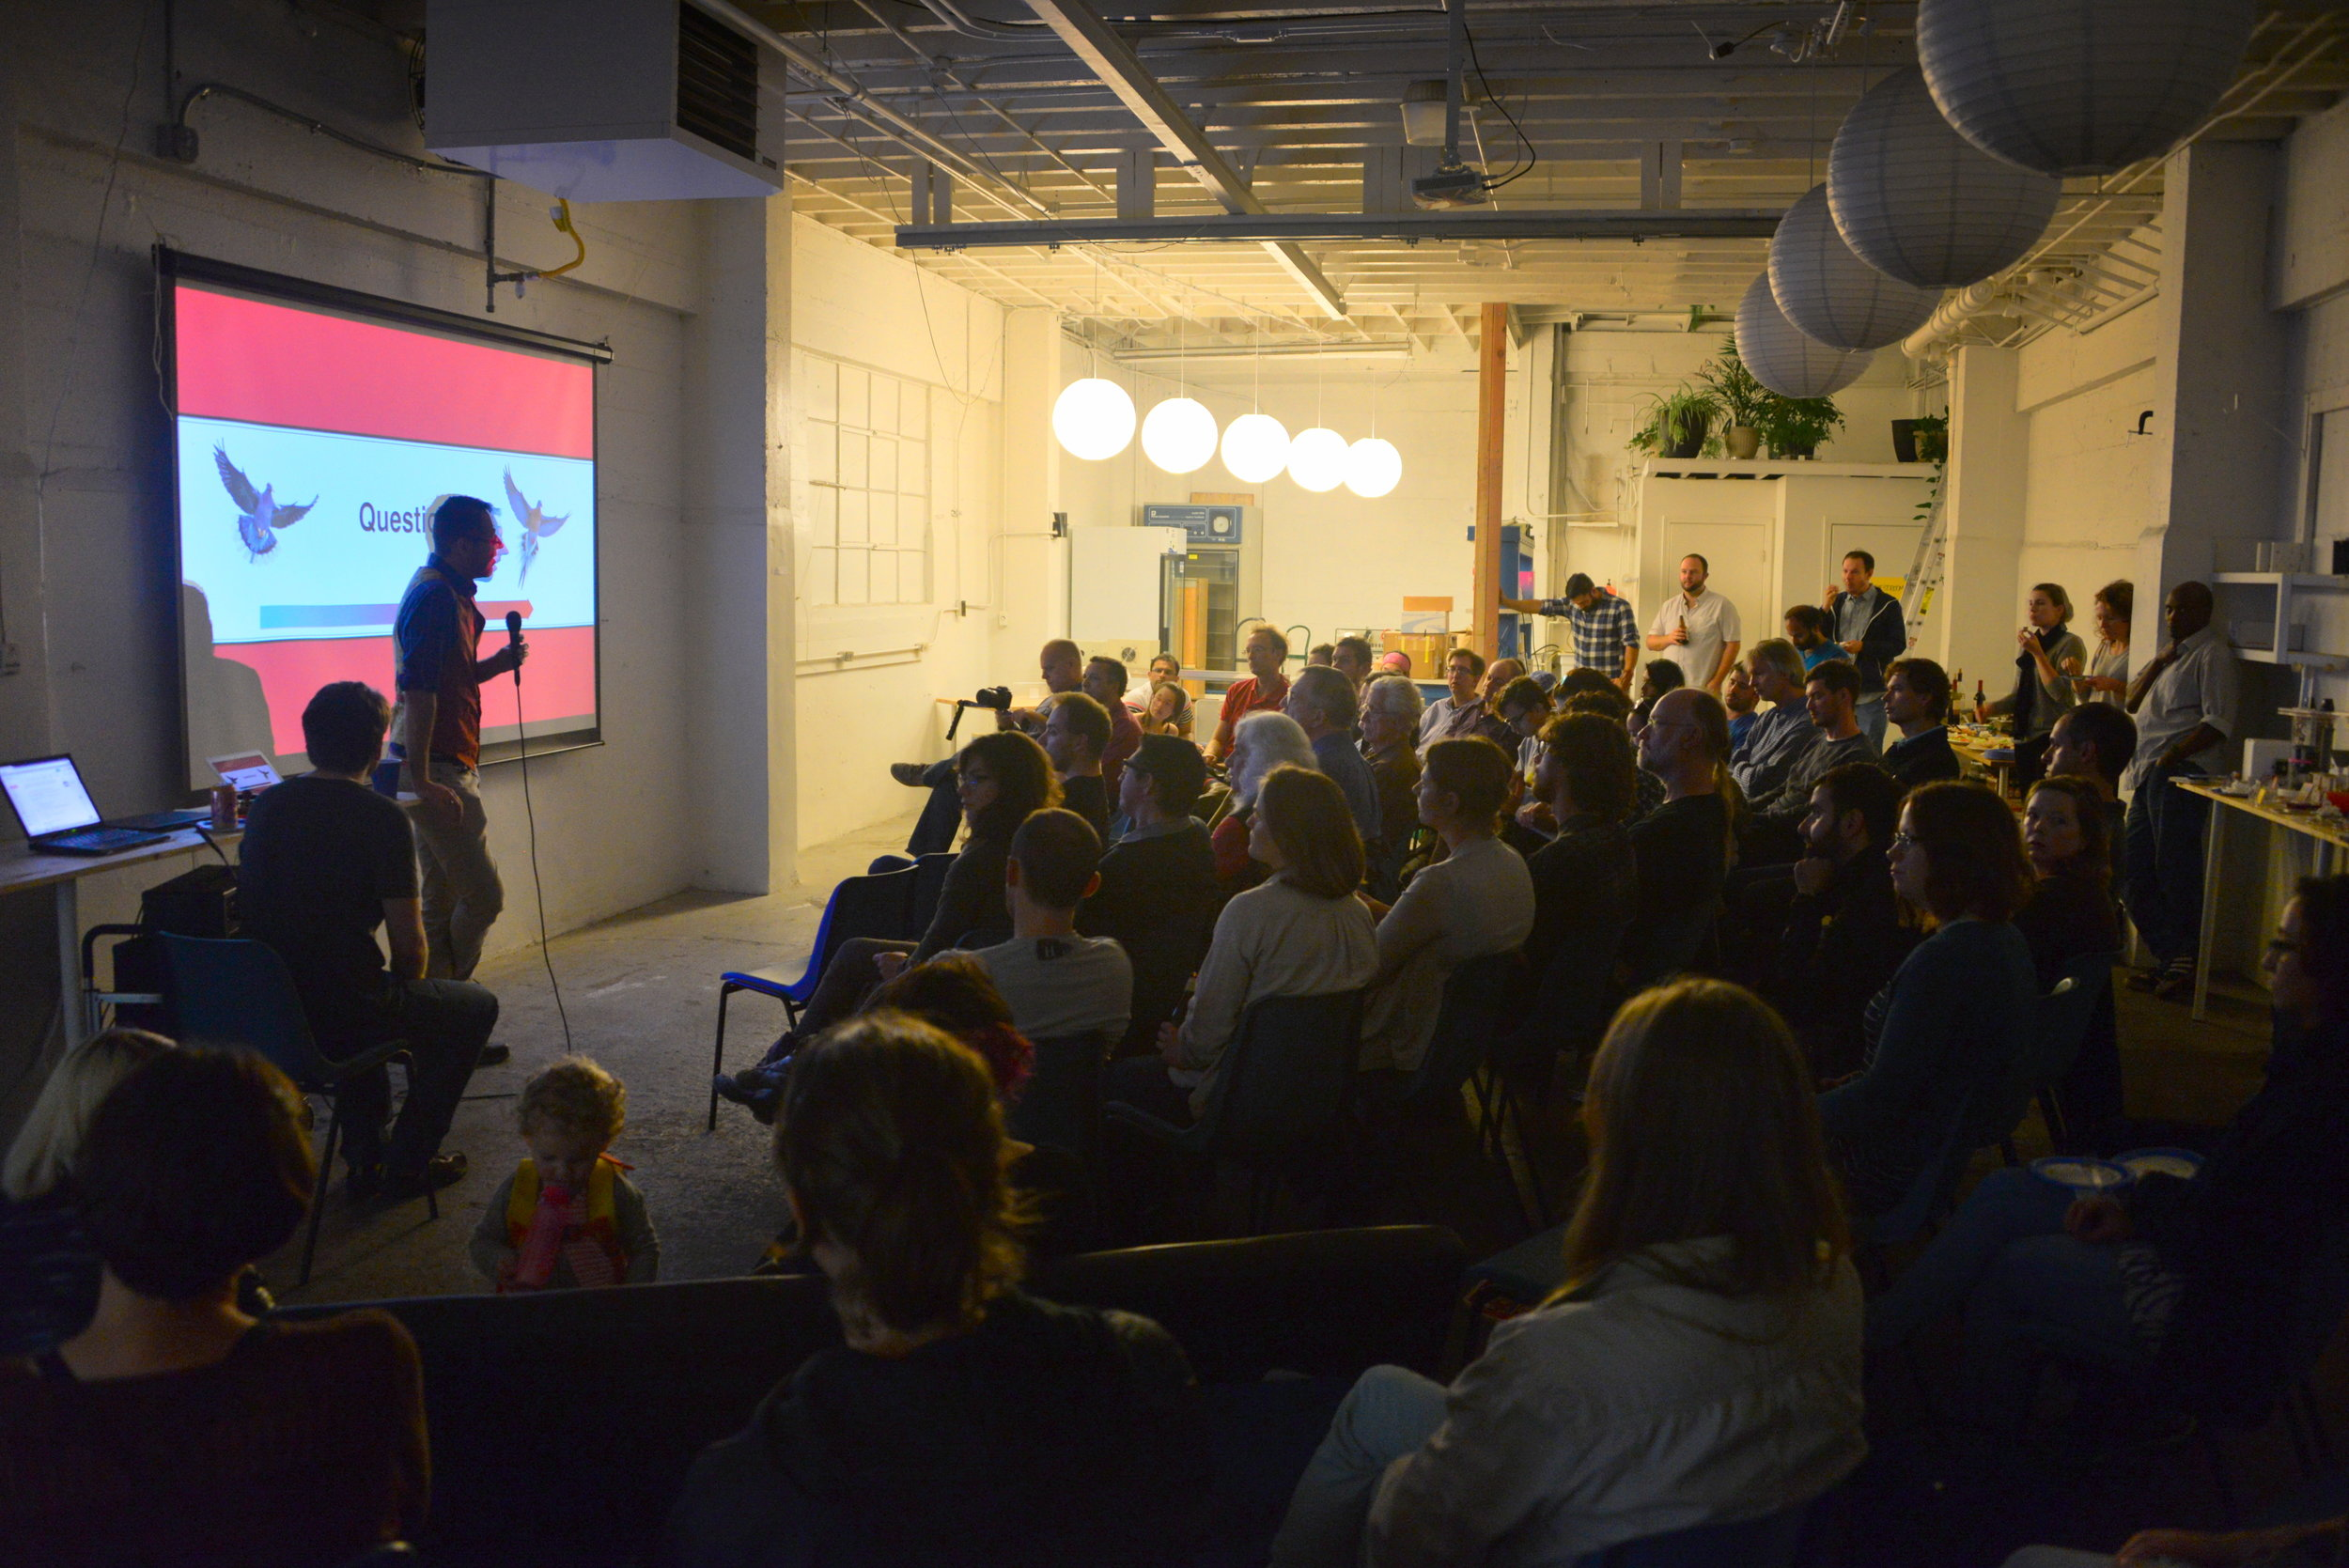 A full house at the Open House made for good networking and provocative questions during Science Salon presentations.